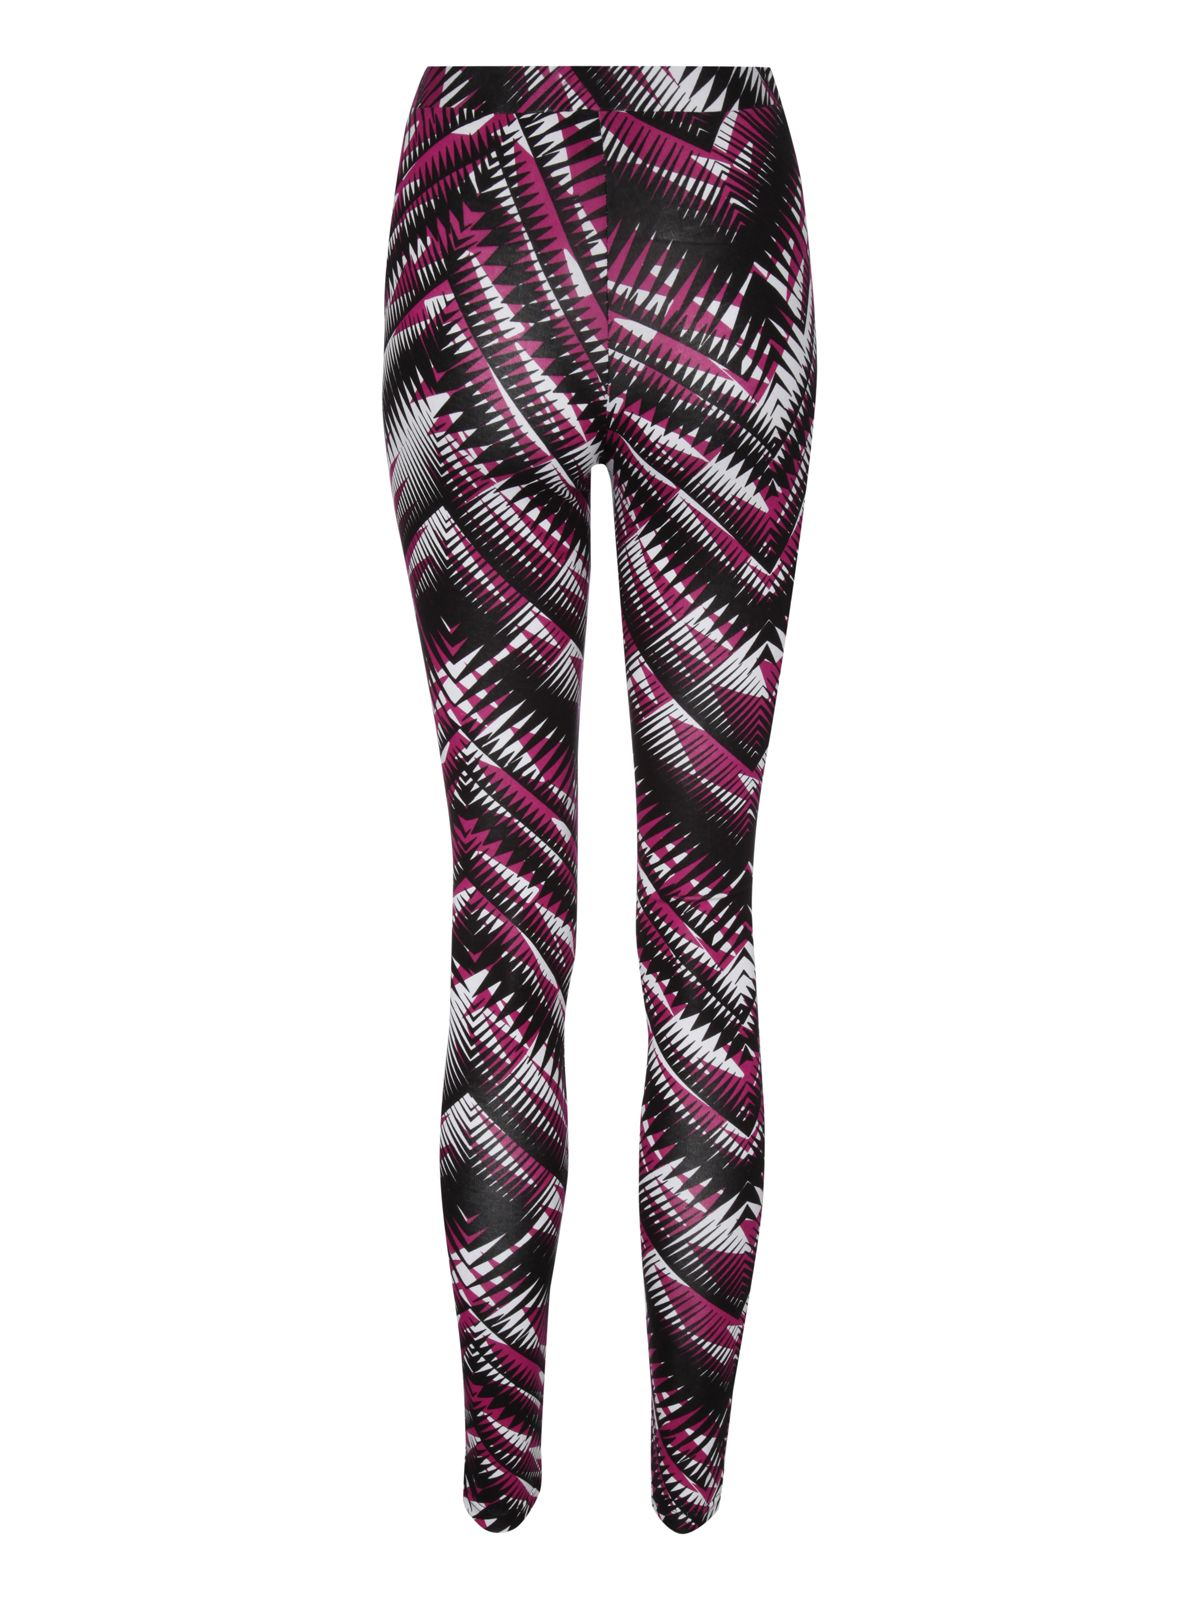 Tribal print monochrome leggings